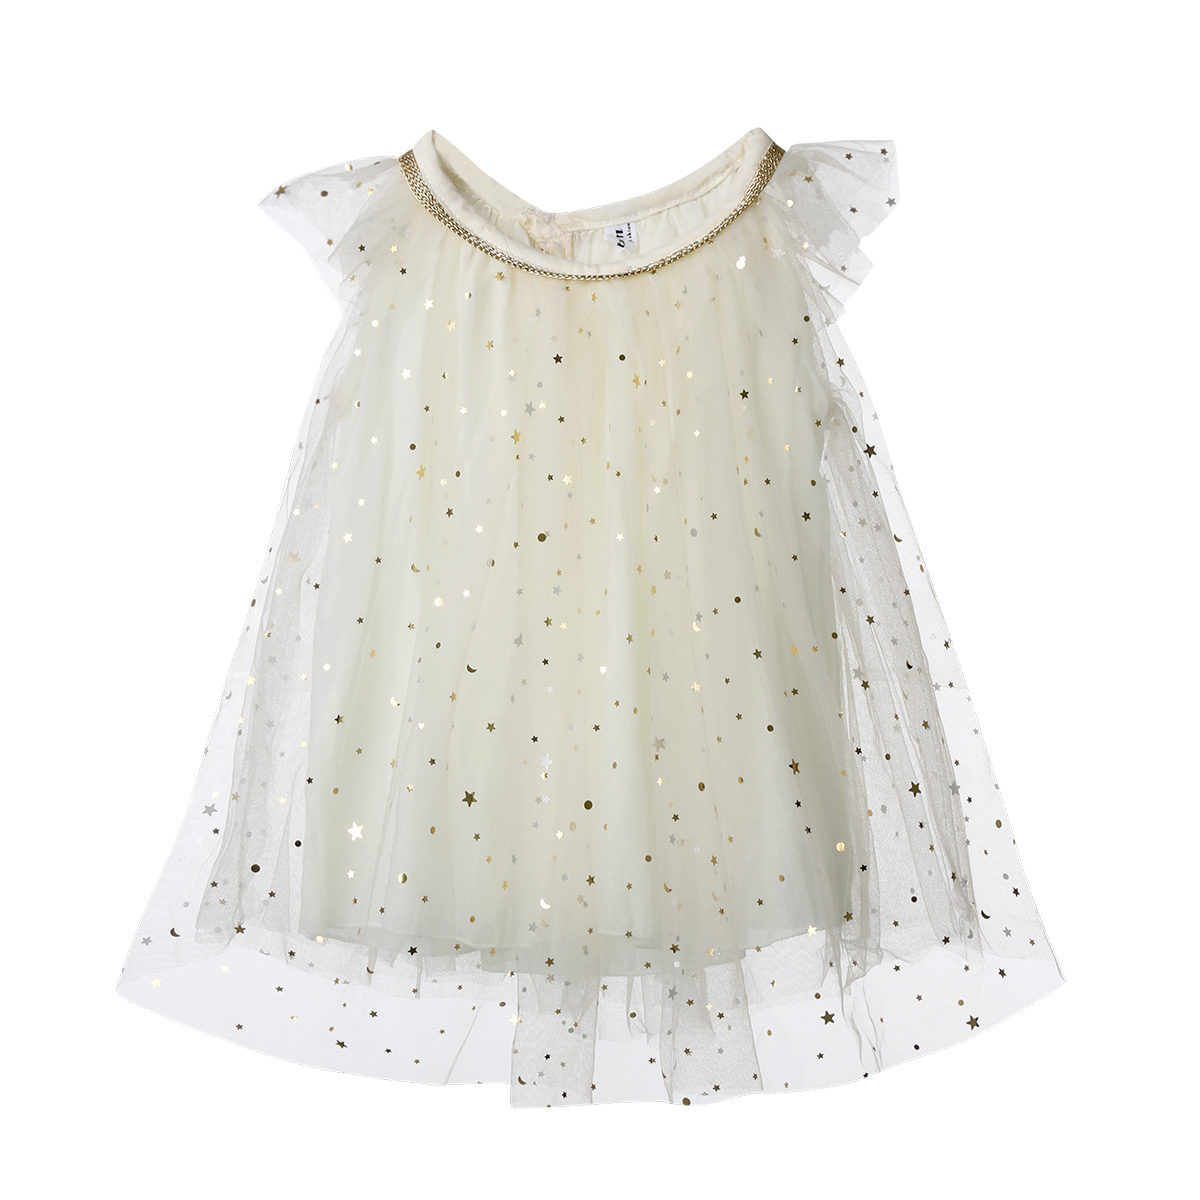 2018 Latest Children's Wear Princess Dress Toddler Kids Baby Girl Tutu Tulle Sequin Star Formal Pageant Chiffon Party Dress 1-6T adorable baby girl and toddler girl formal dress little girl pageant dresses girl brand clothes 1t 6t g284a